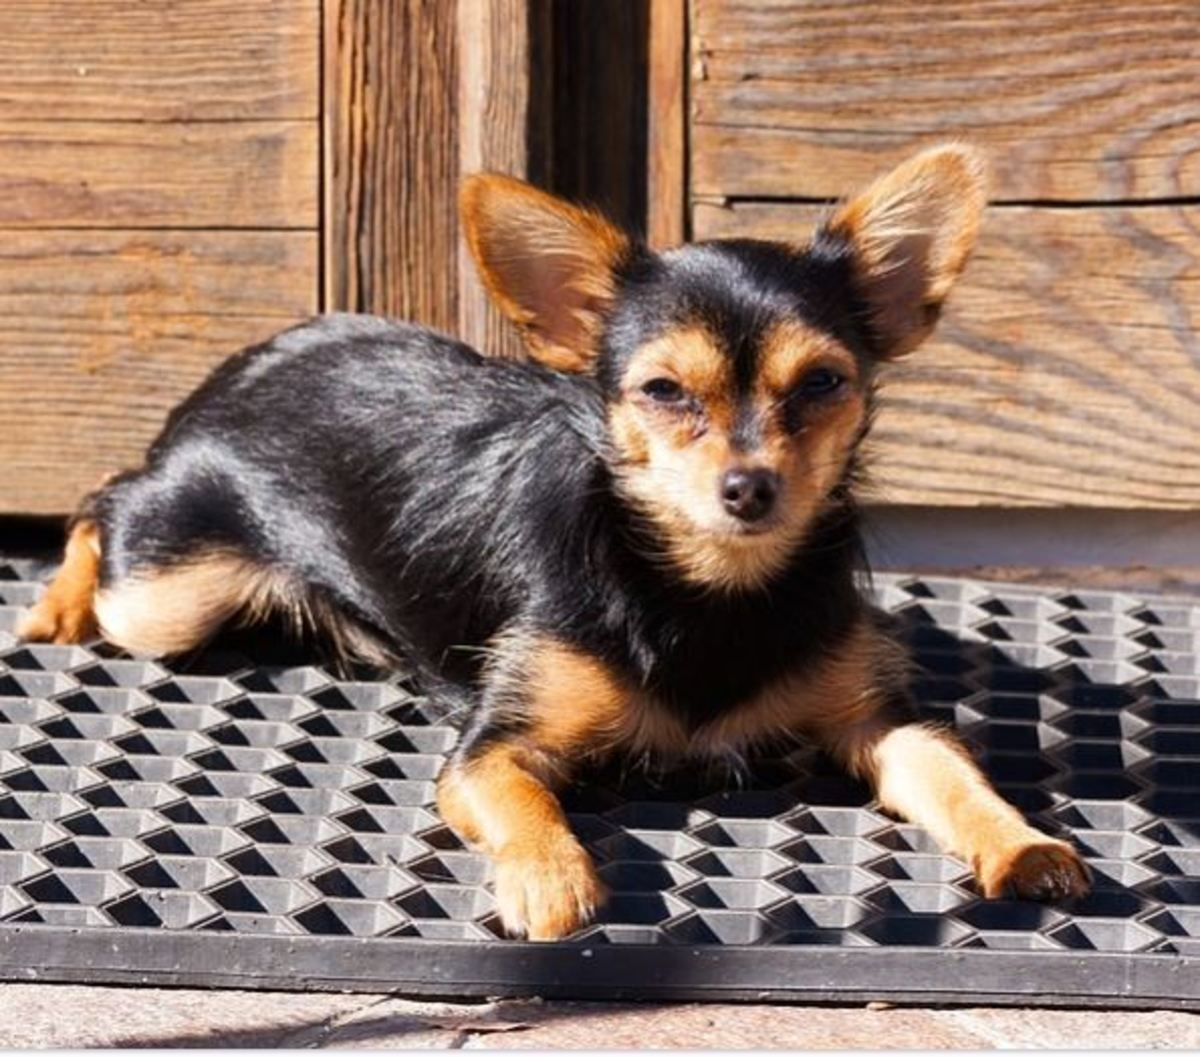 With proper conditioning, dogs become comfortable and secure on their mats.